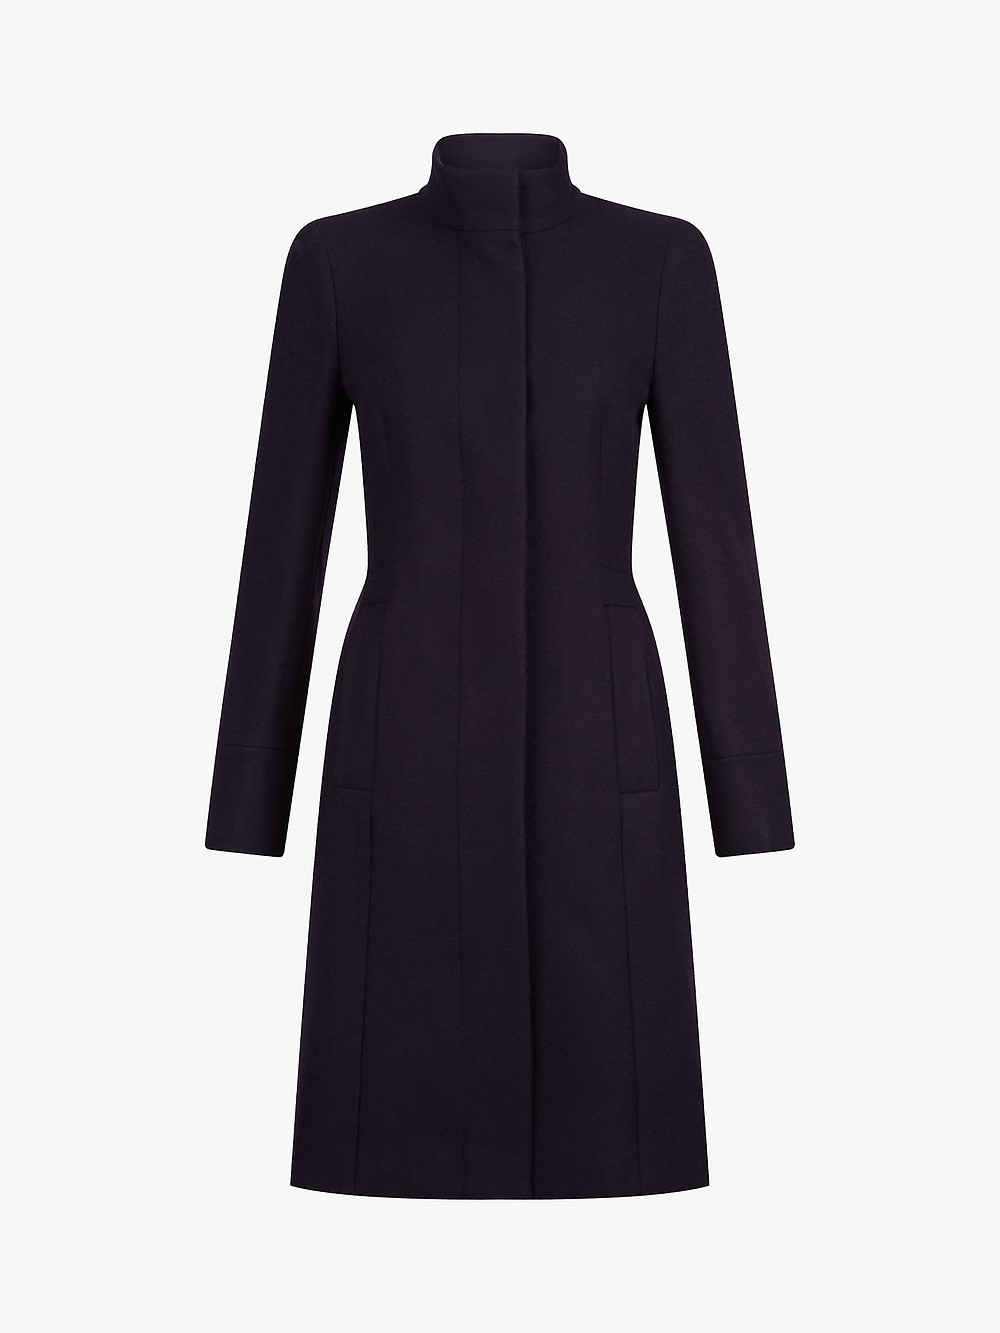 Hobbs Athena Coat, The Winter Coat, A Practical Buying Guide, The Image Tree Blog